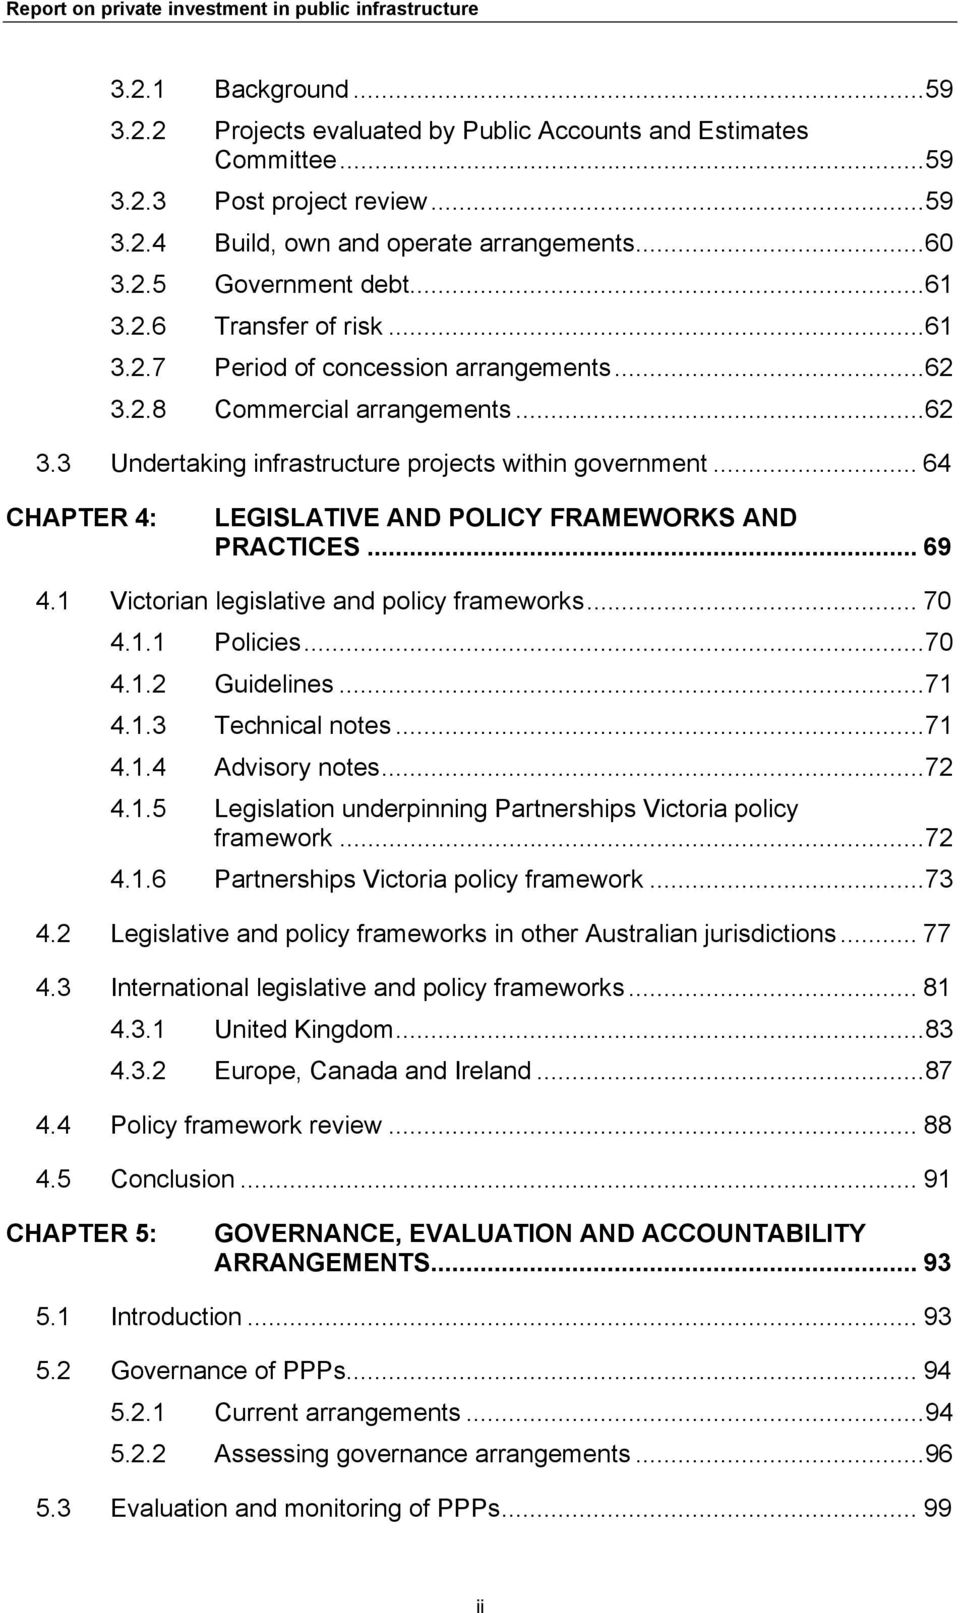 .. 64 CHAPTER 4: LEGISLATIVE AND POLICY FRAMEWORKS AND PRACTICES... 69 4.1 Victorian legislative and policy frameworks... 70 4.1.1 Policies...70 4.1.2 Guidelines...71 4.1.3 Technical notes...71 4.1.4 Advisory notes.